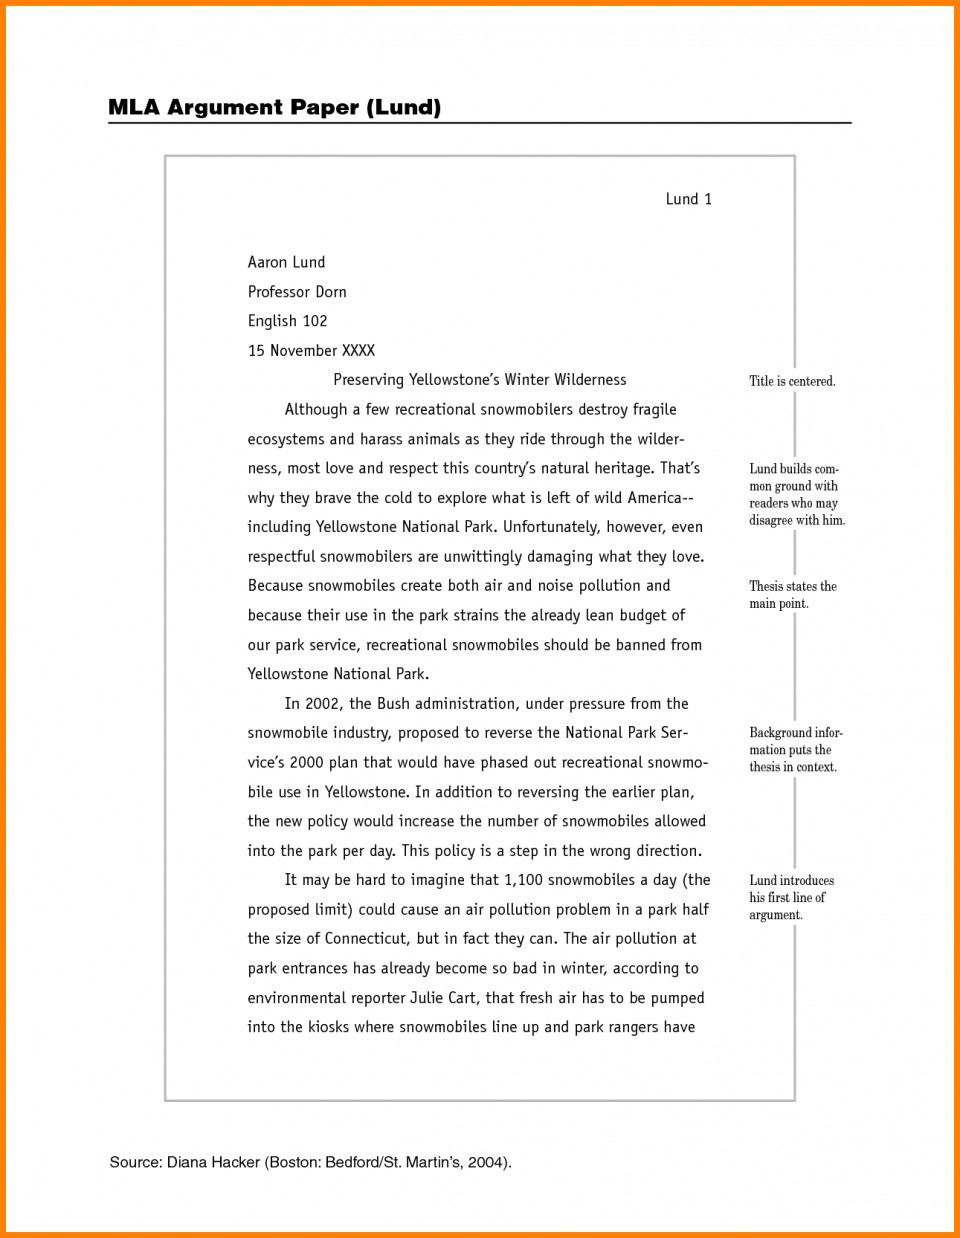 008 How To Write Research Paper Sample Essay Example Mla Stirring Format Layout With Title Page 2017 960